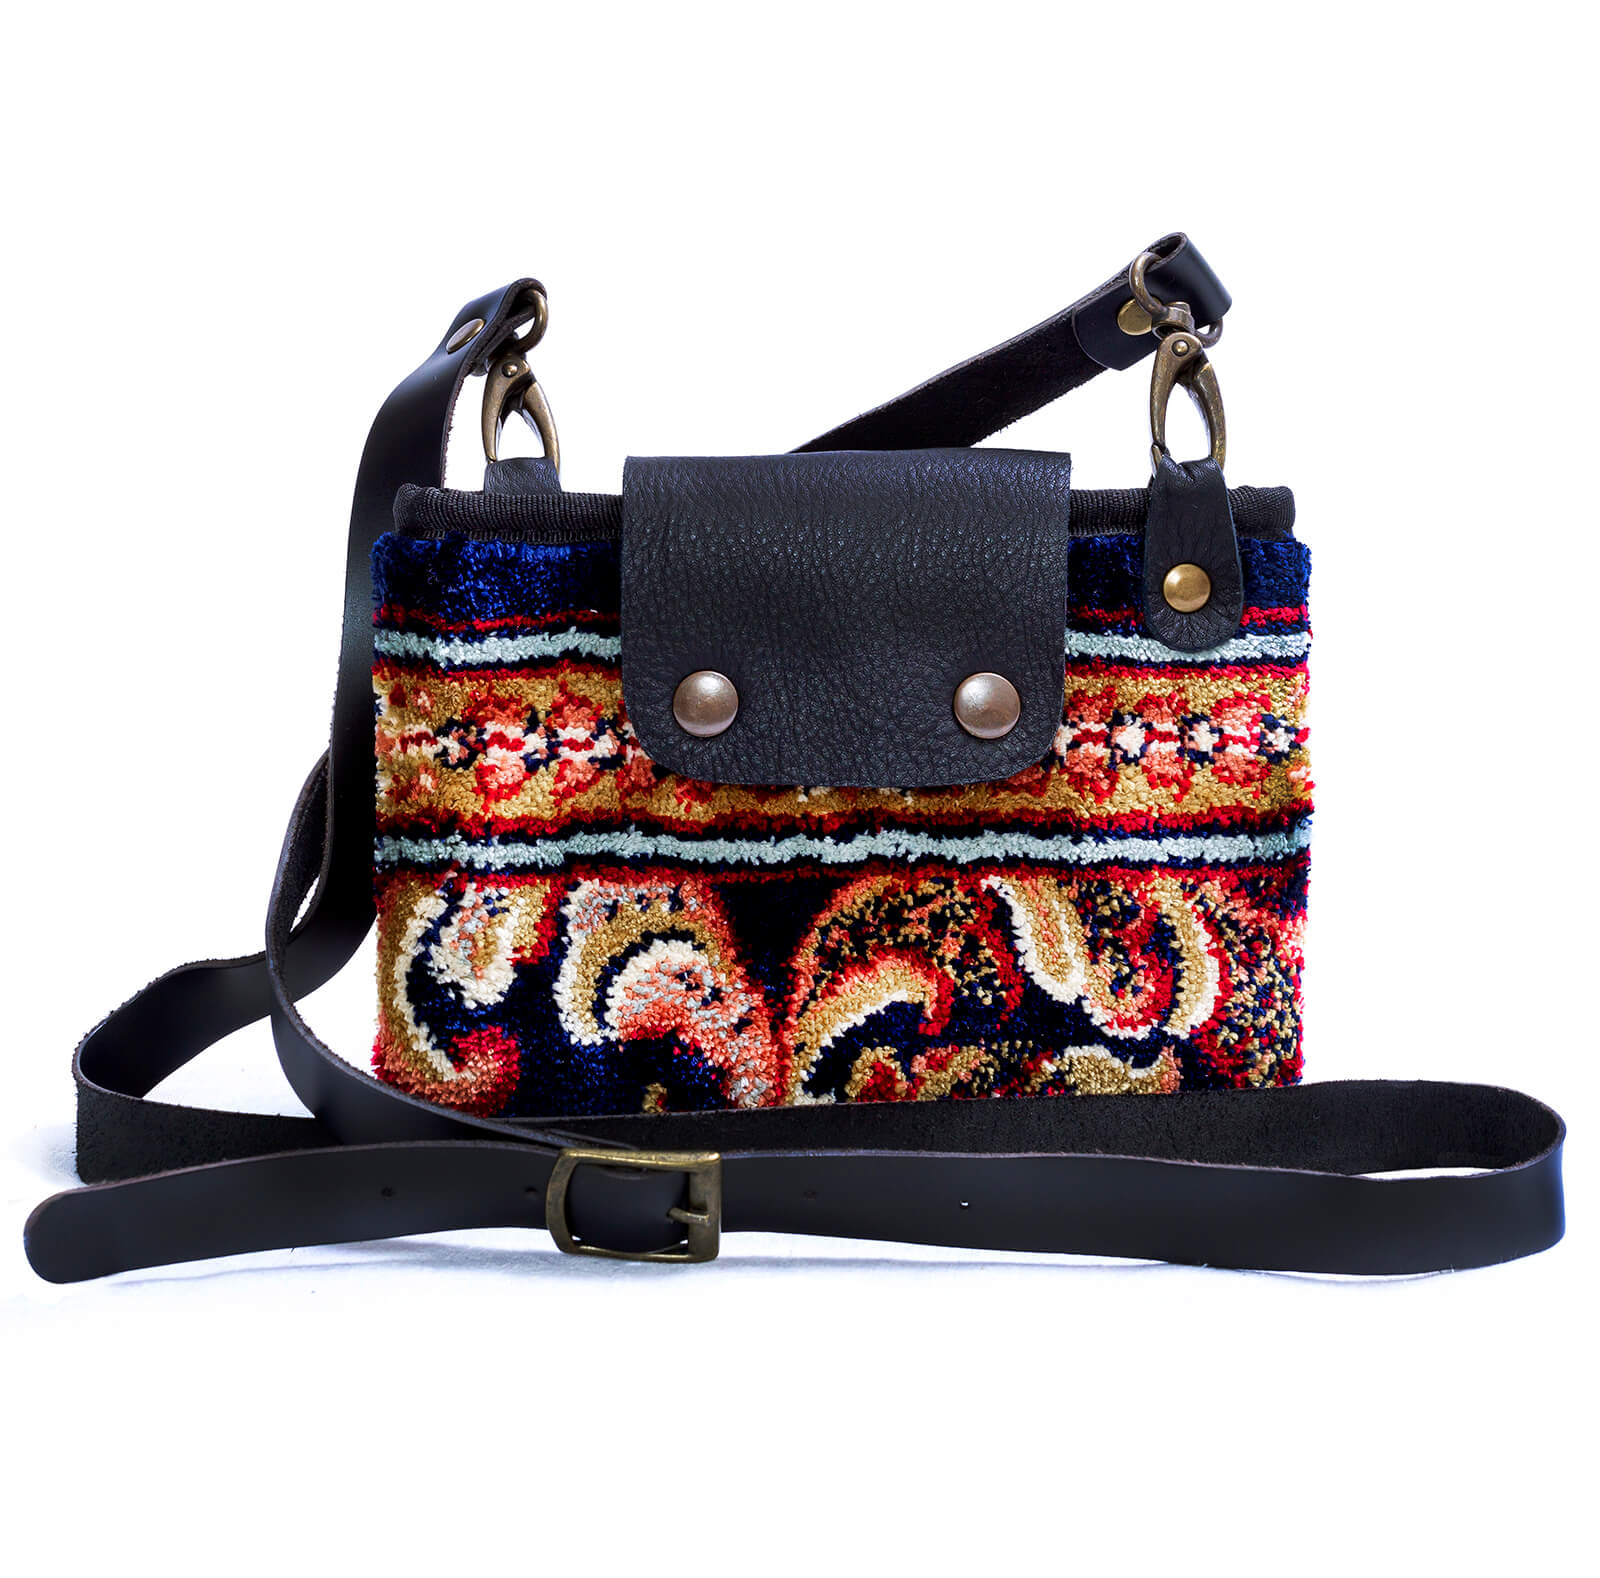 Image of MYSTERY Blossom Navy Victorian Carpet Bag.